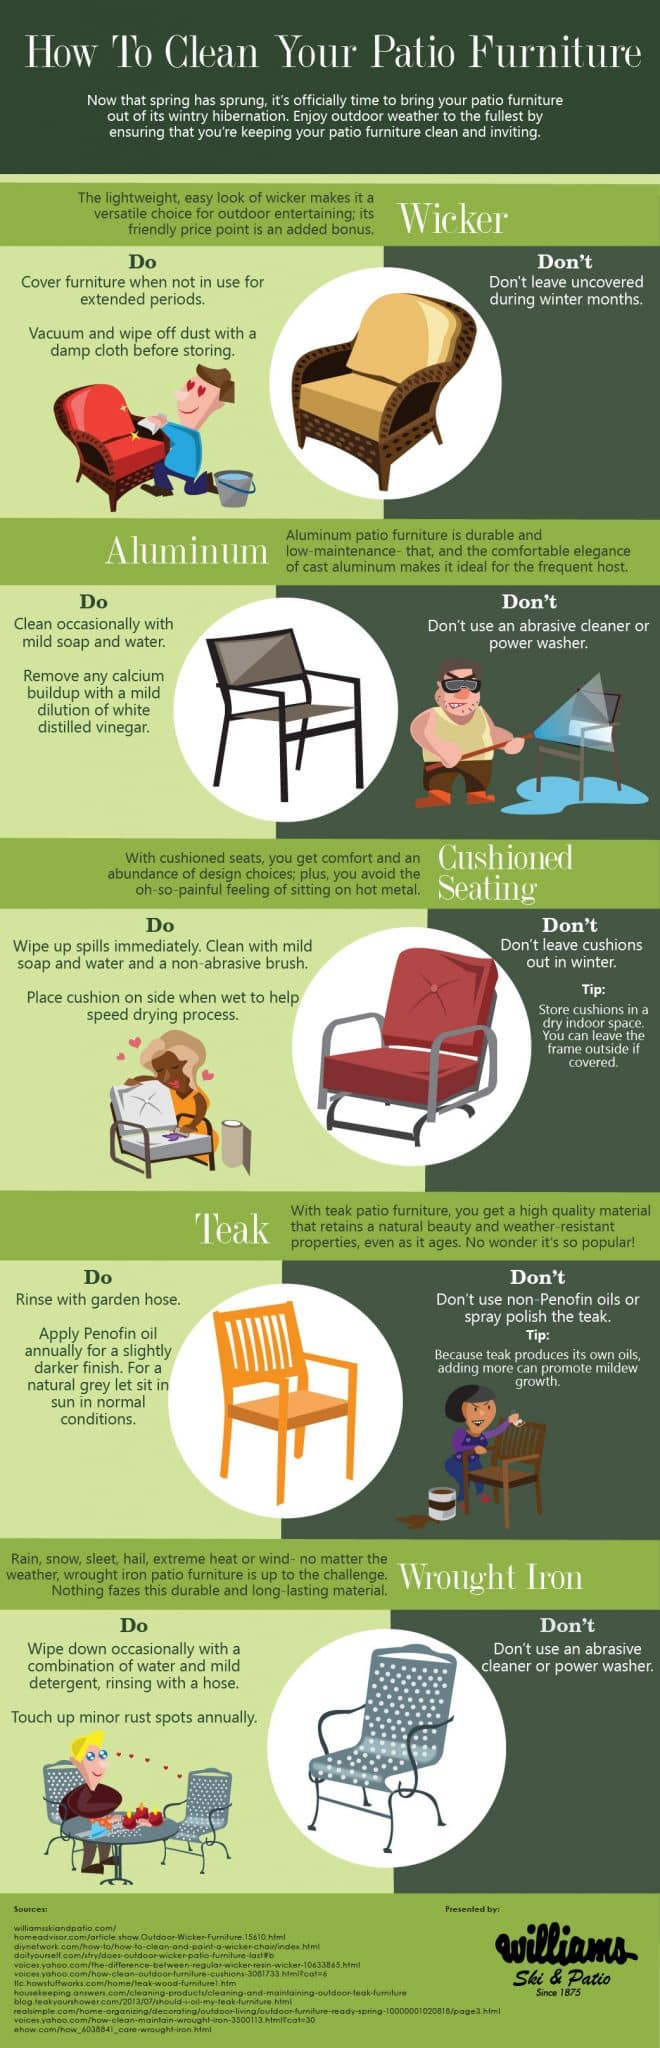 Ways To Care For Your Patio Furniture